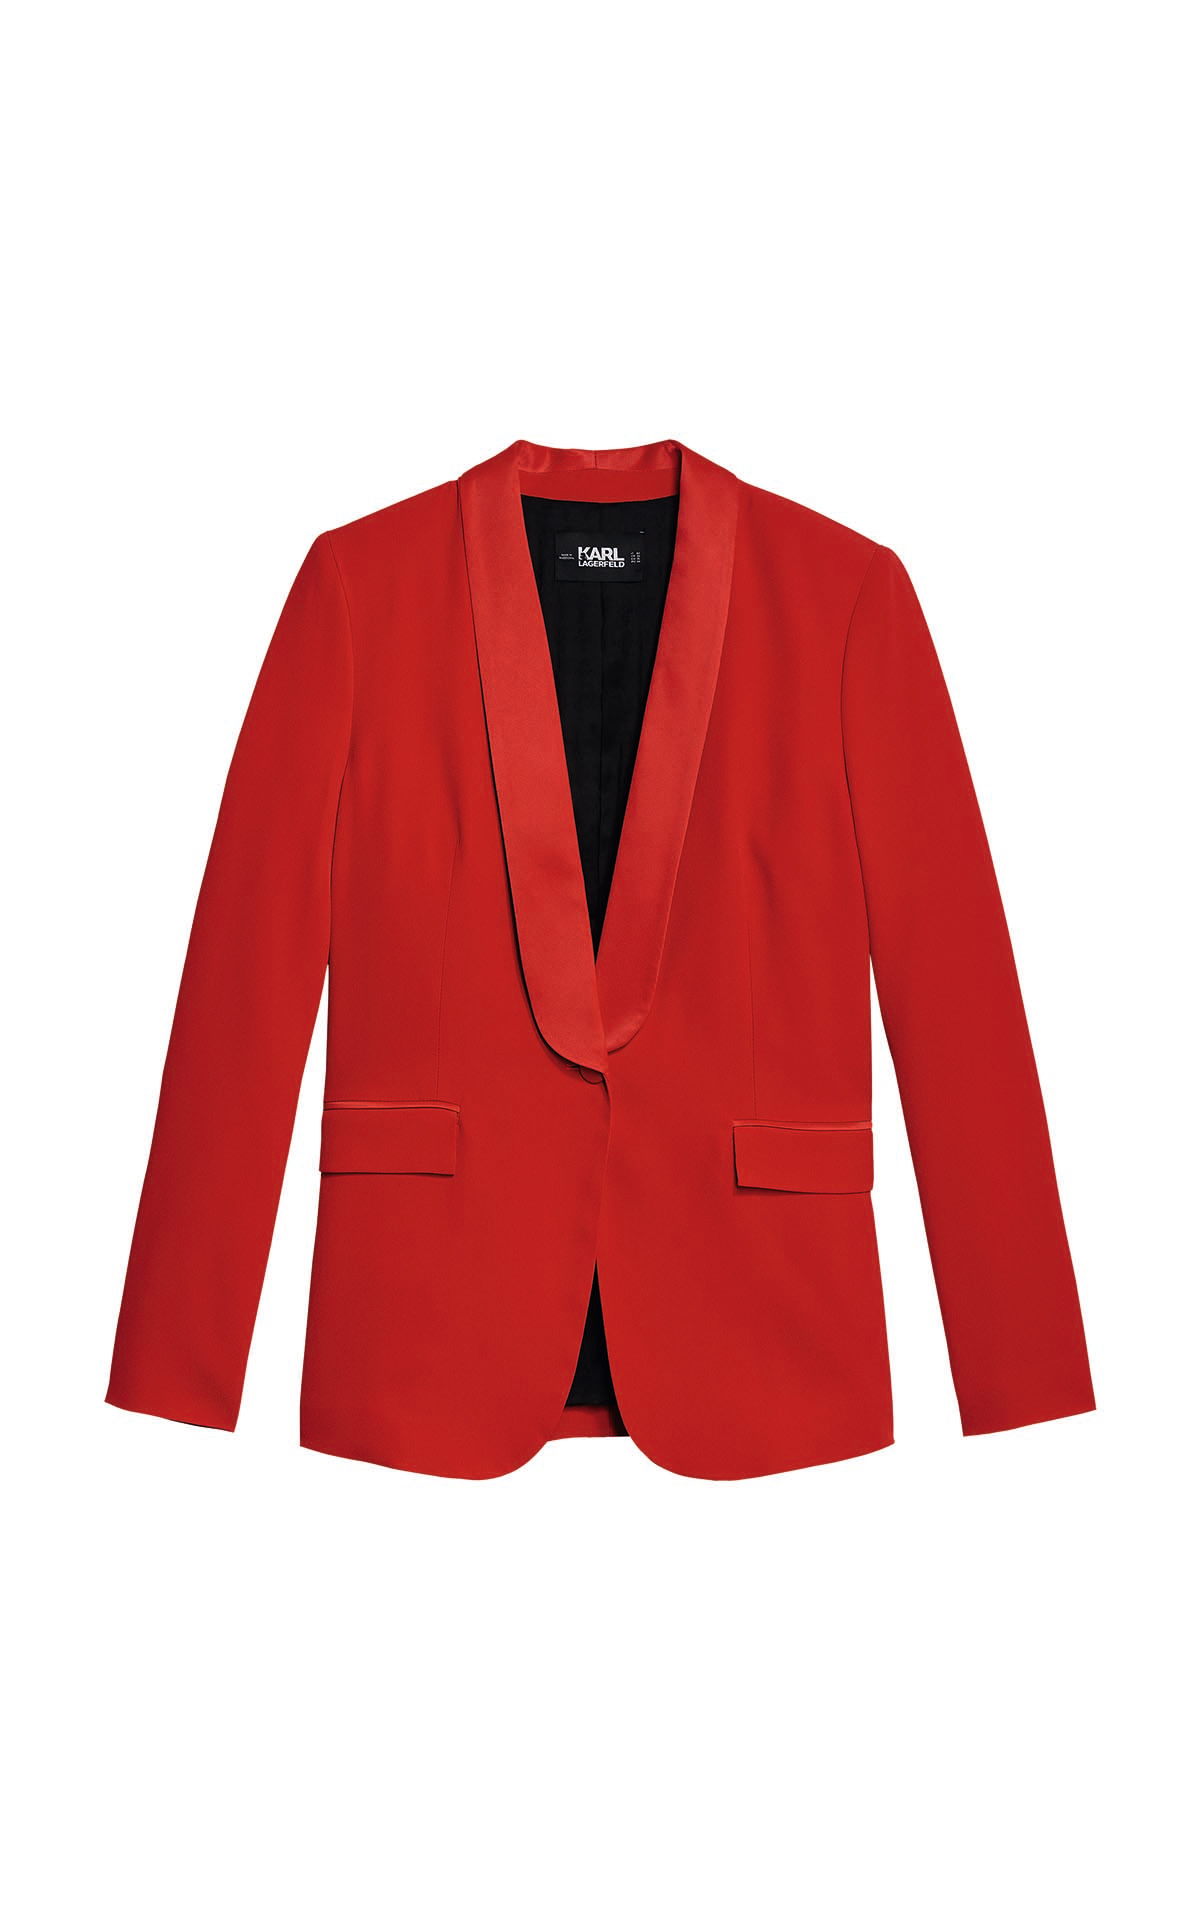 Karl Lagerfeld tailored blazer at The Bicester Village Shopping Collection